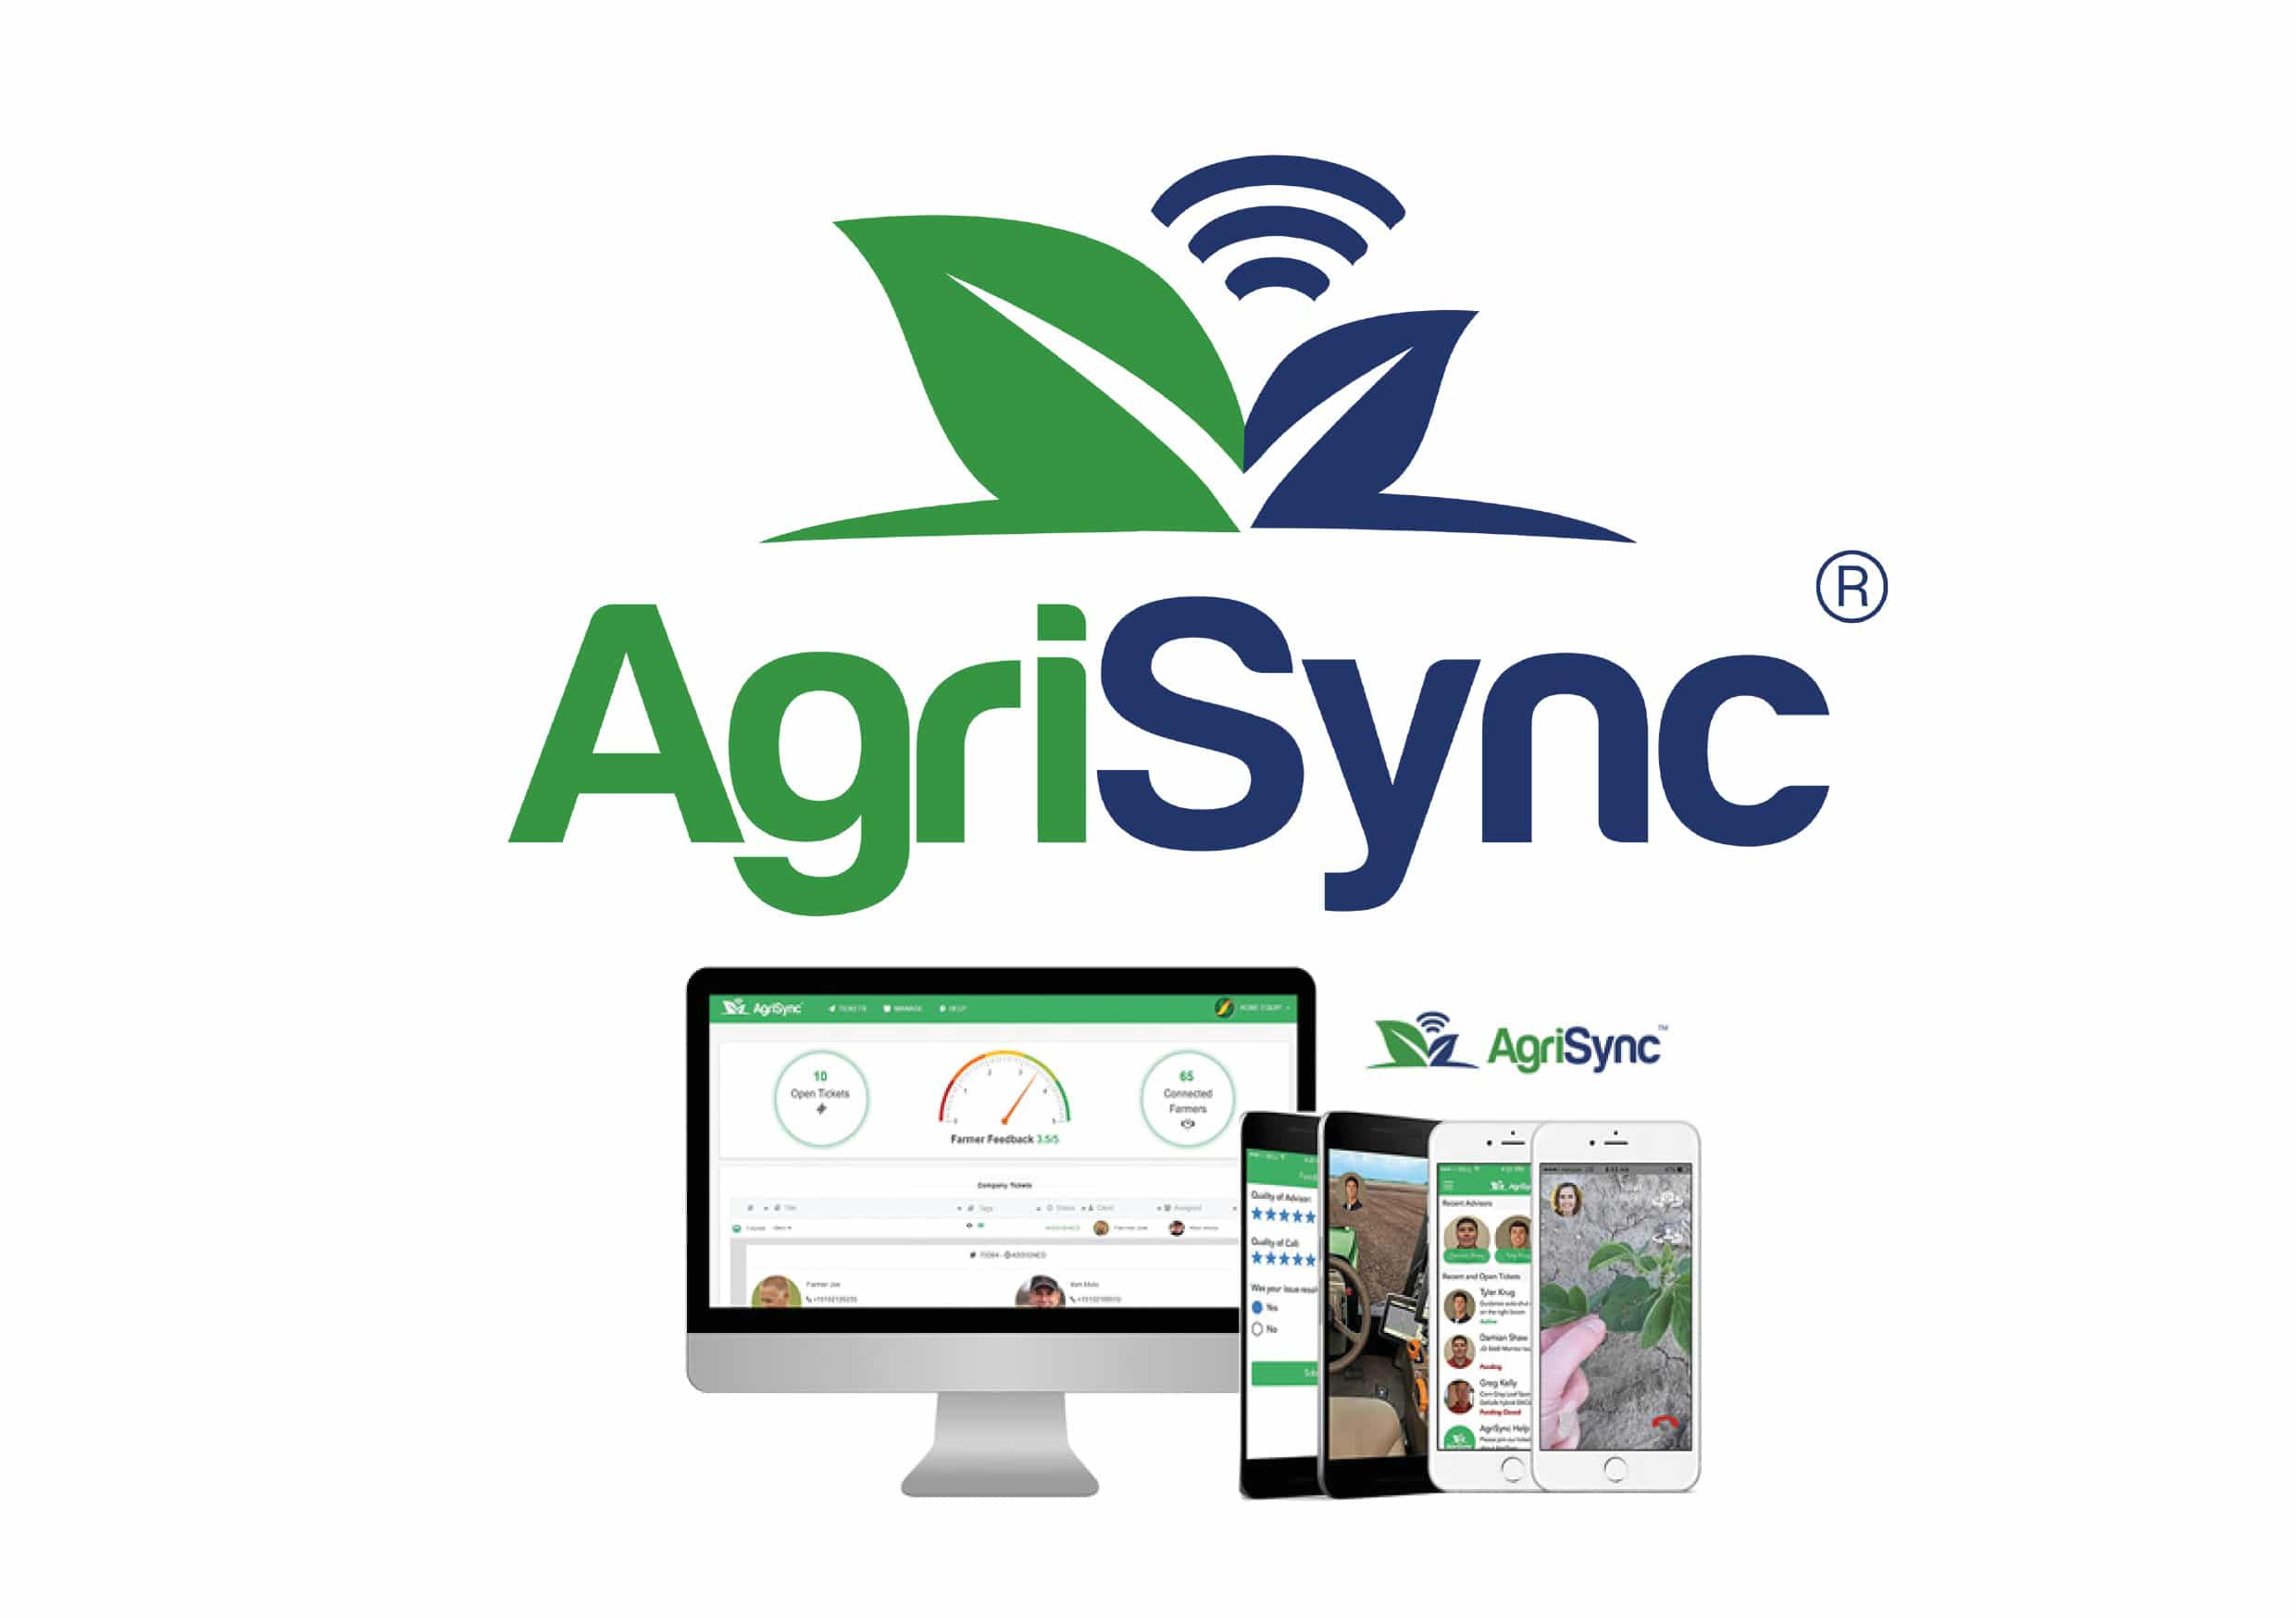 AgriSync App being displayed on multiple devices